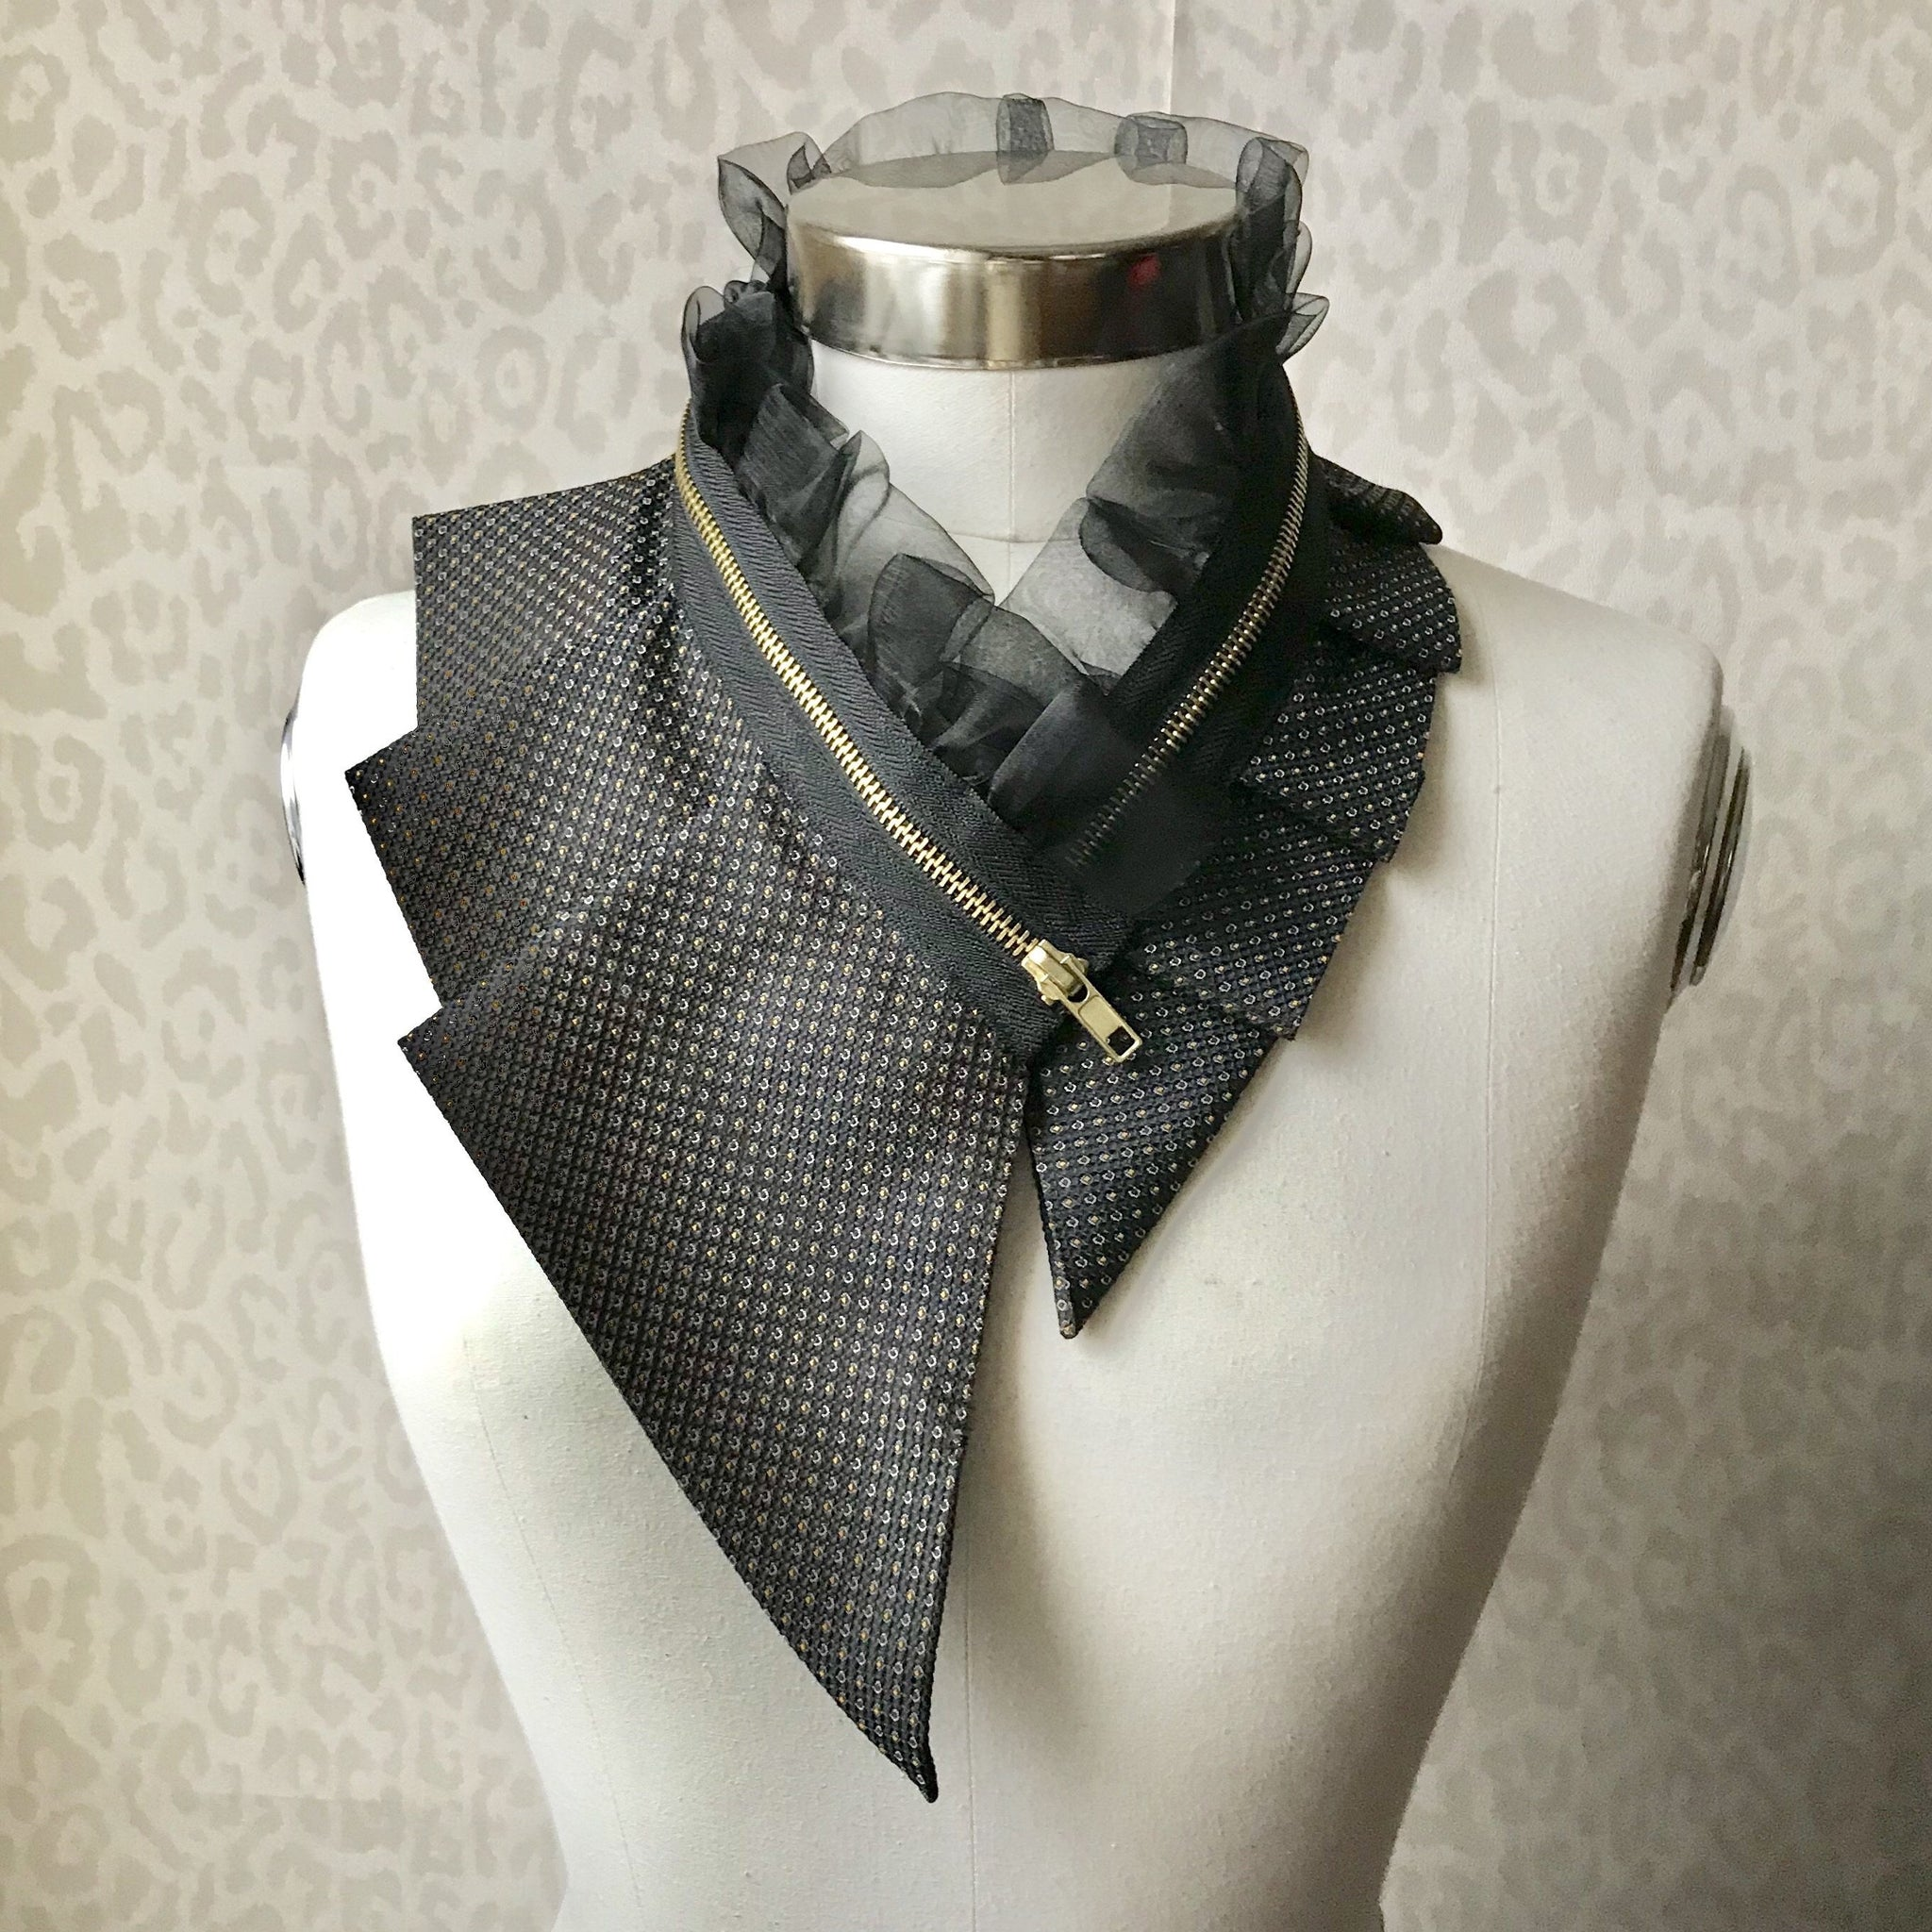 Zipper collar necklace #292